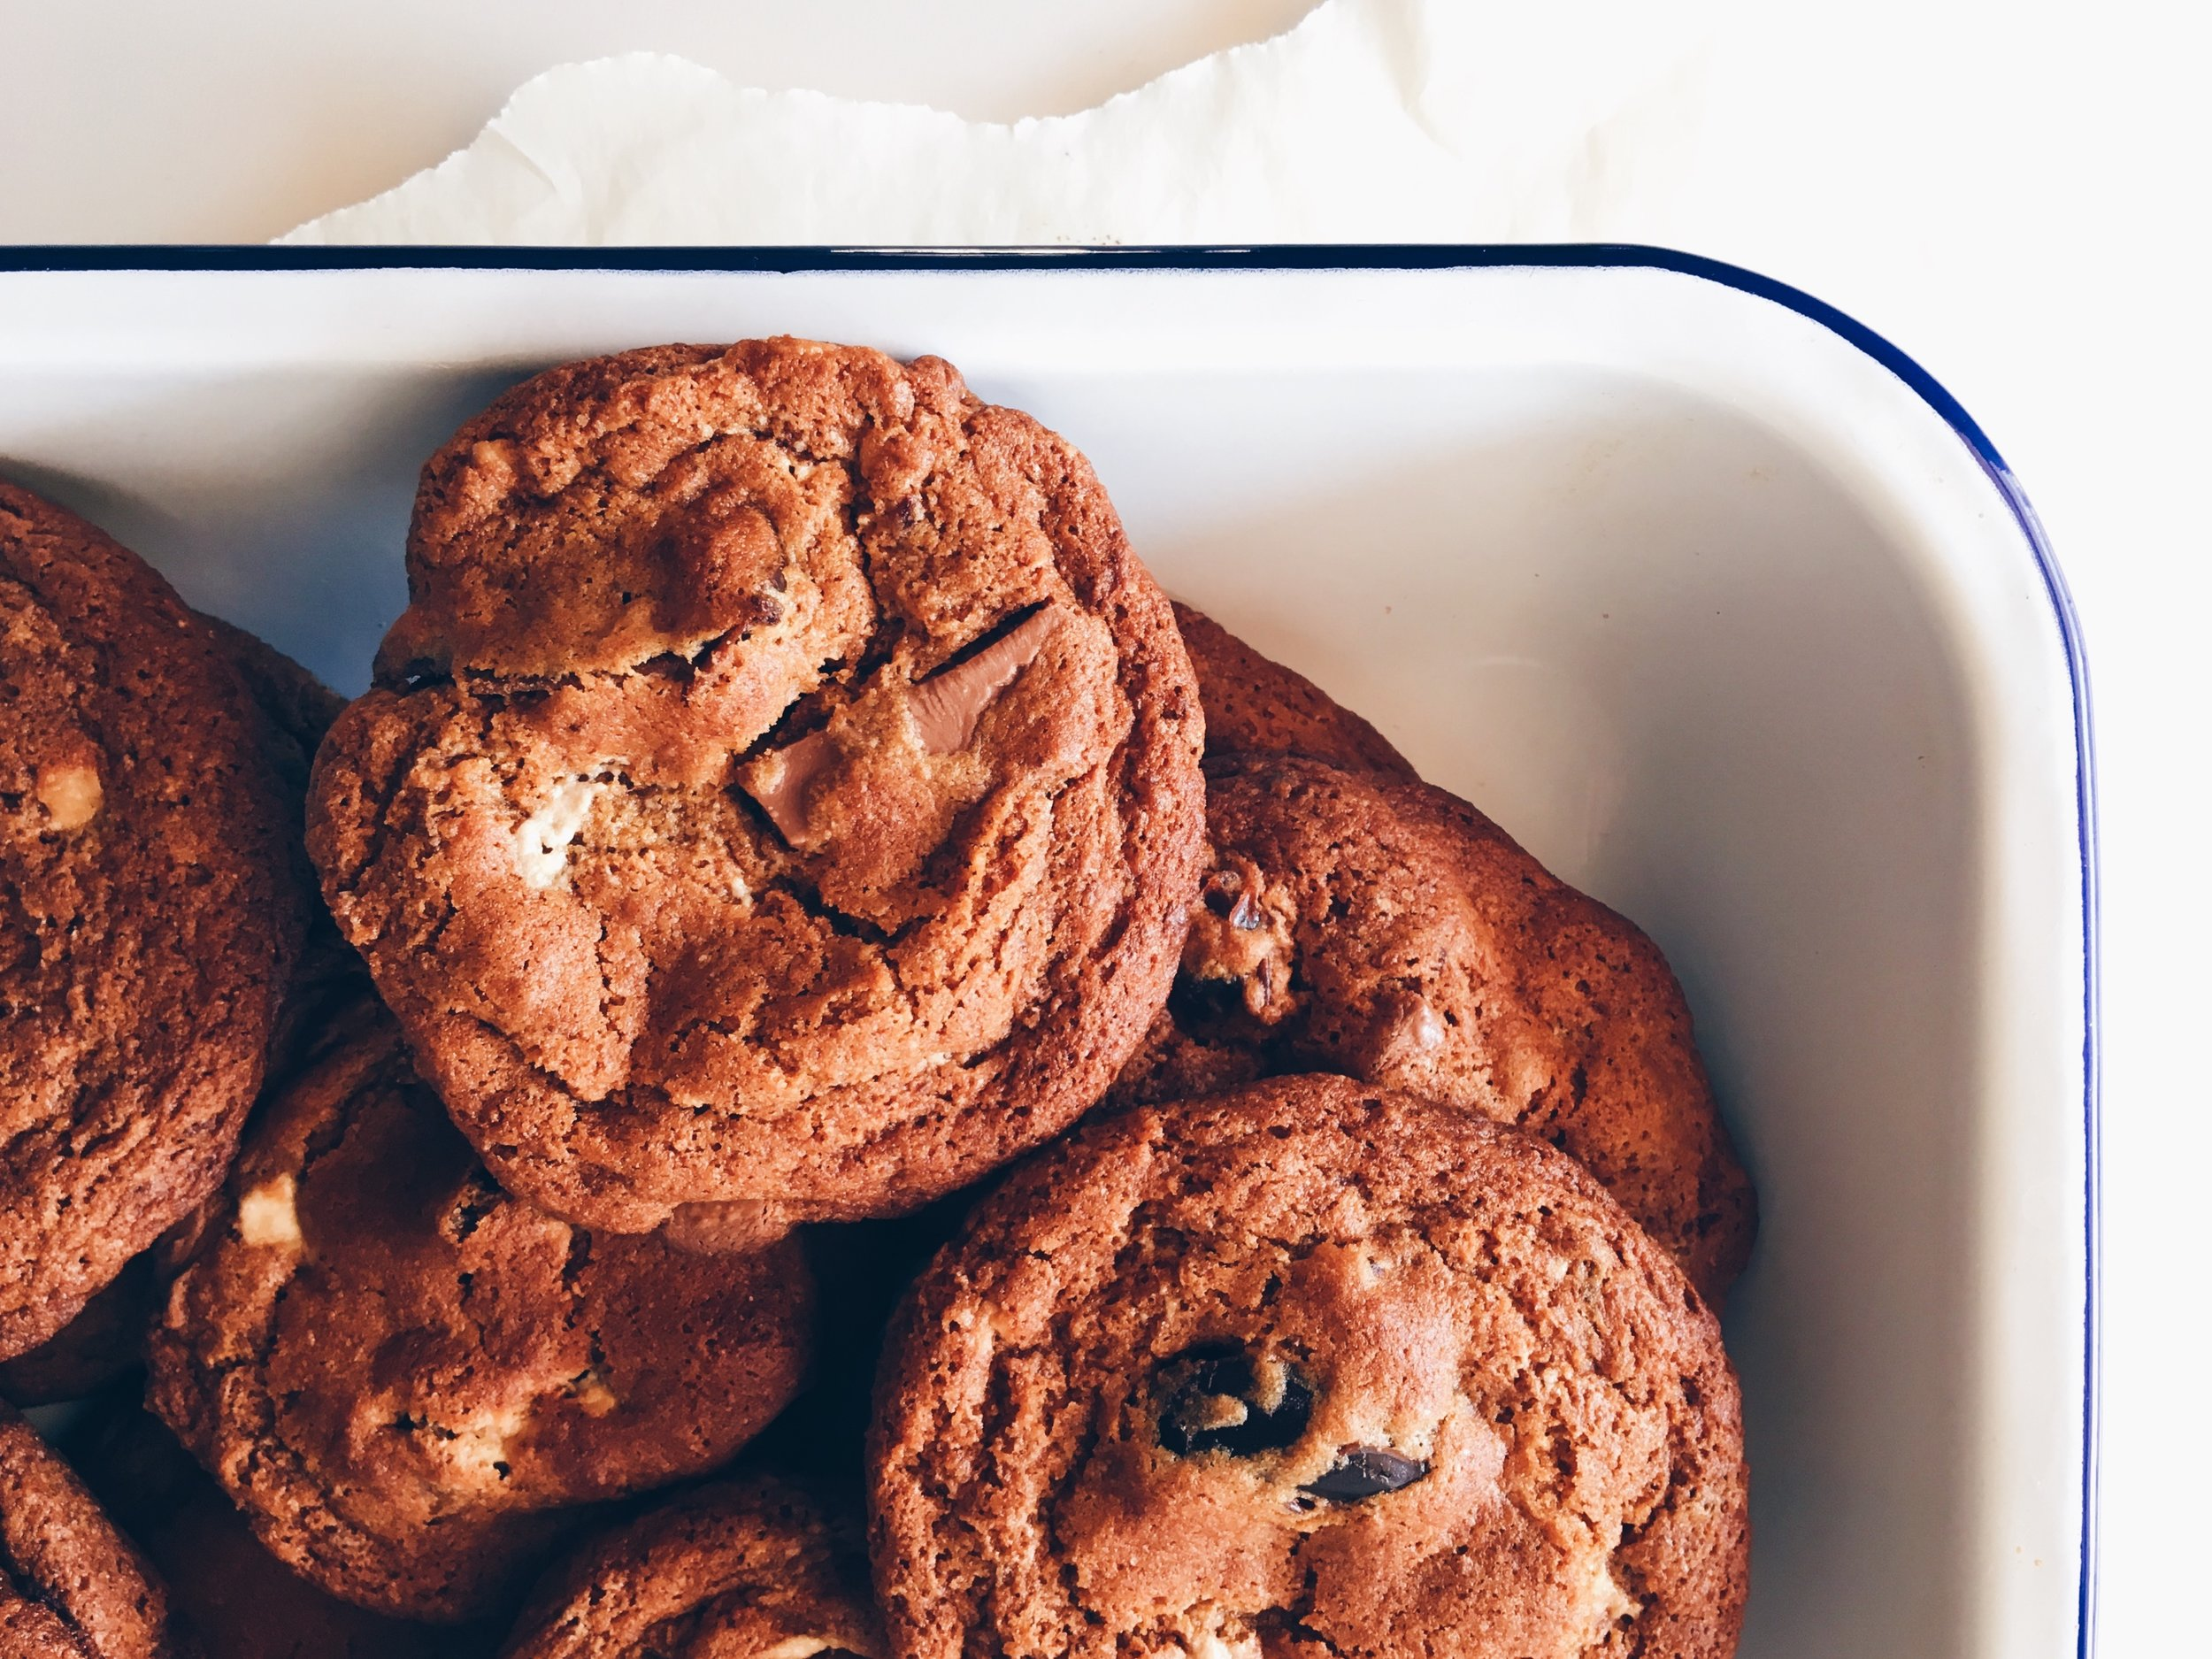 Recipe: Date, Halvah, and Chocolate Chunk Cookies